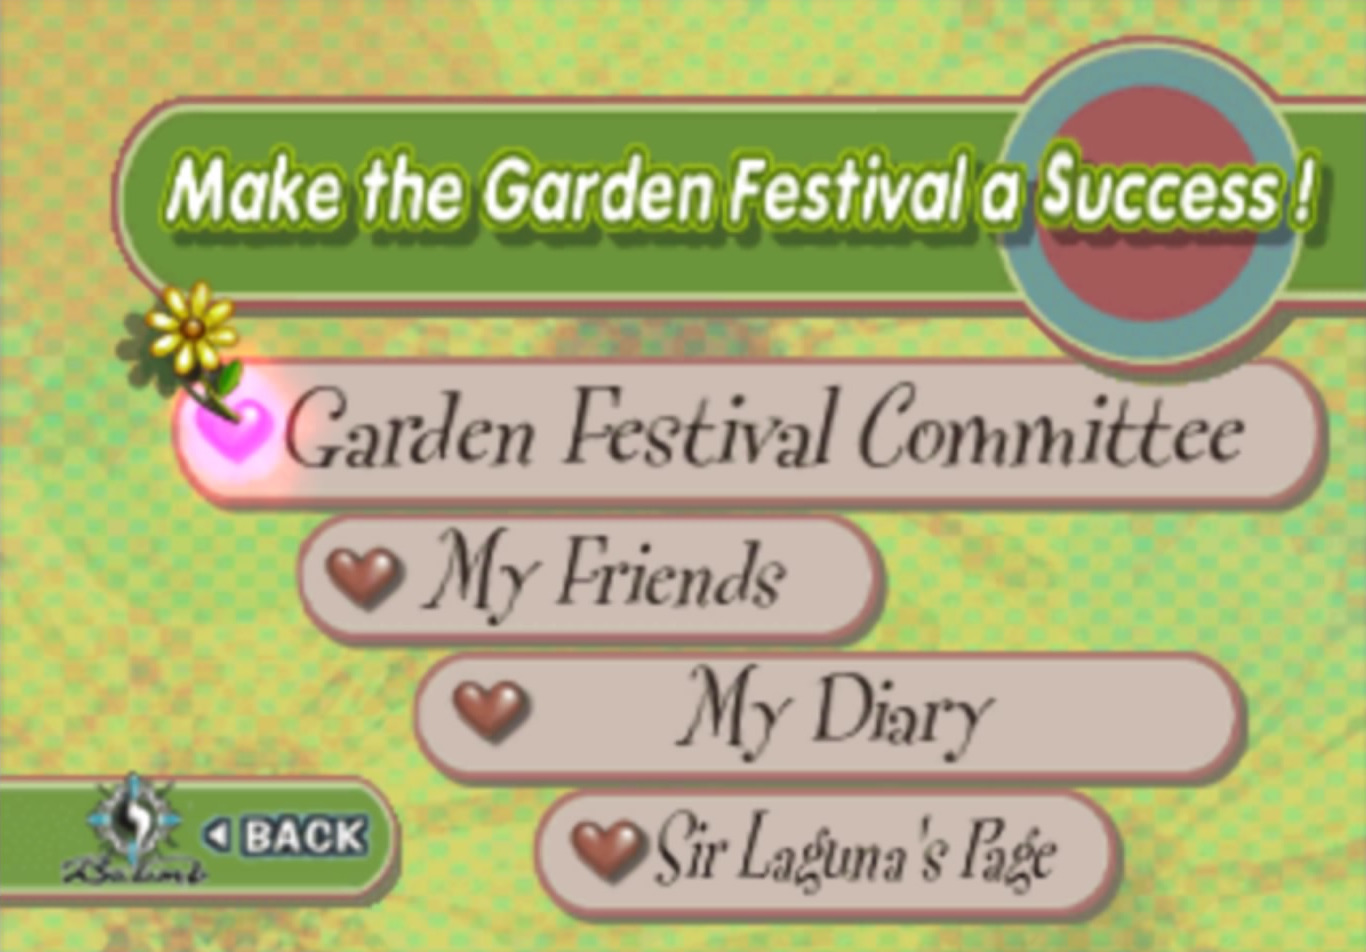 Festival Commitee Screen.jpg